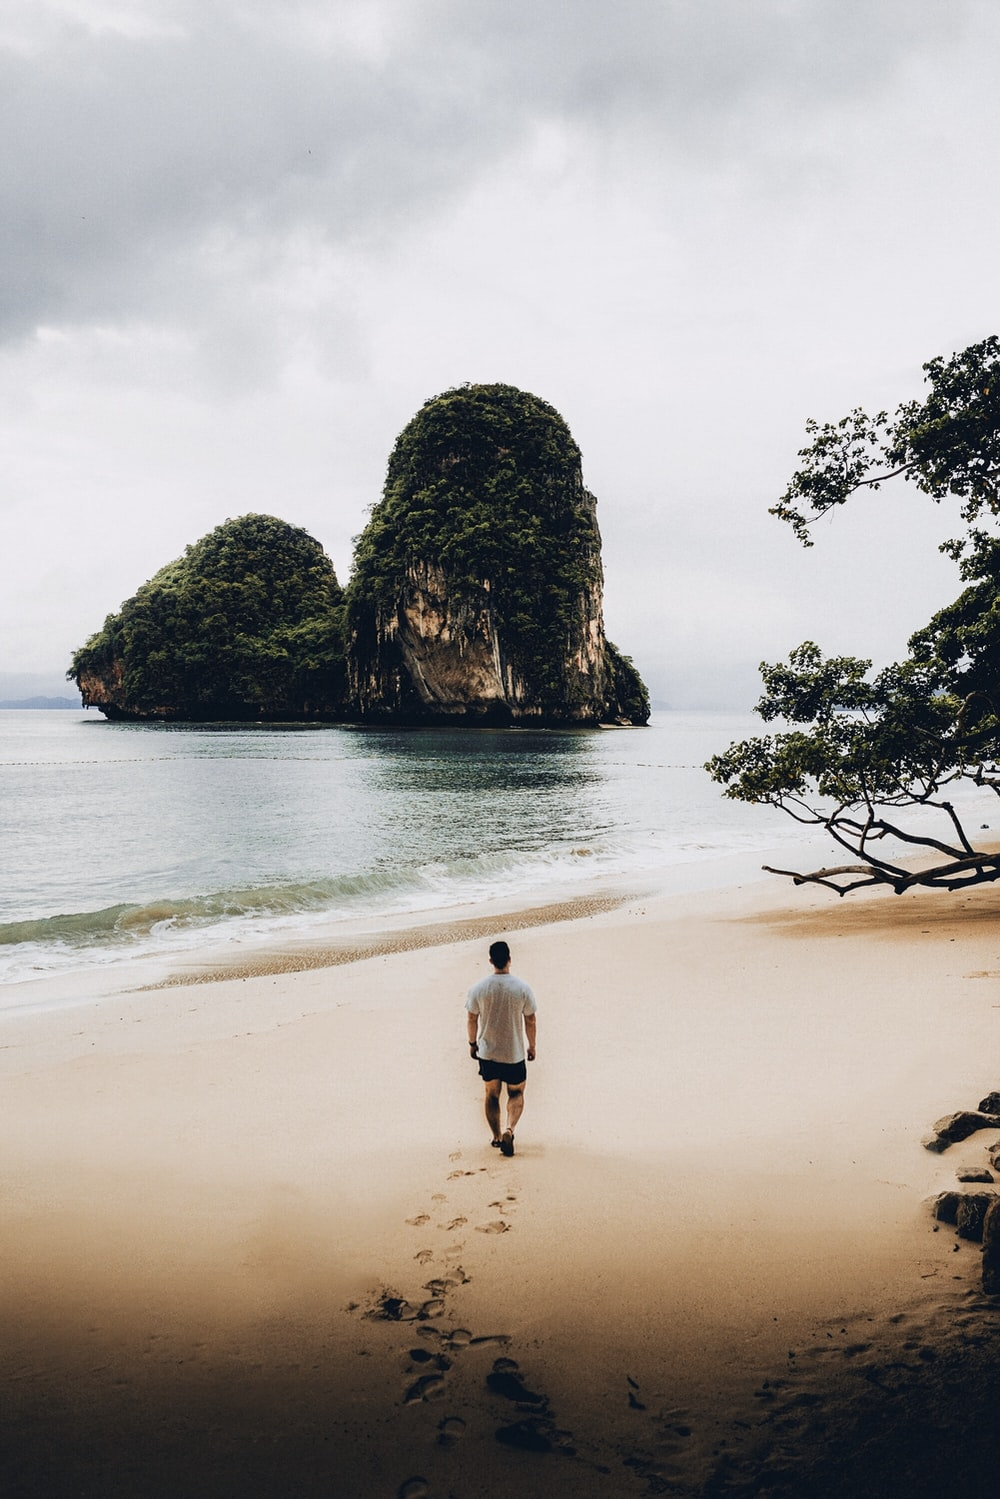 man in white t shirt walking on shore facing two islets